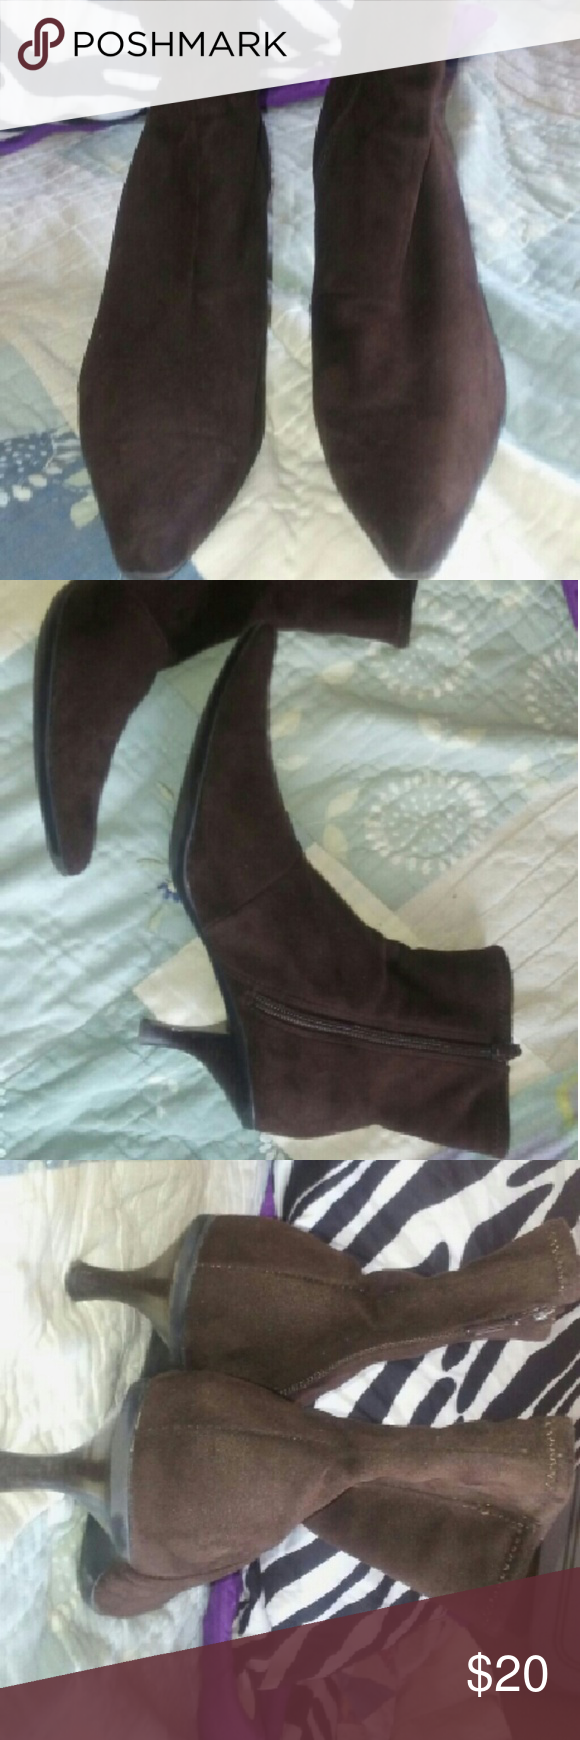 NEW NORDSTROM BROWN SUEDE ANKLE BOOTS 6 1/2 LIKE NEW SUPER CUTE BROWN SUEDE NORDSTROM ANKLE BOOTS ZIP UP THE INSIDE. SIZE 6 1/2. FEEL FREE TO MAKE AN OFFER. I REALIZE THAT TIMES ARE TIGHT SOMETIMES AND WE ALL COULD USE A BREAK OCCASIONALLY ?? Nordstrom Shoes Ankle Boots & Booties